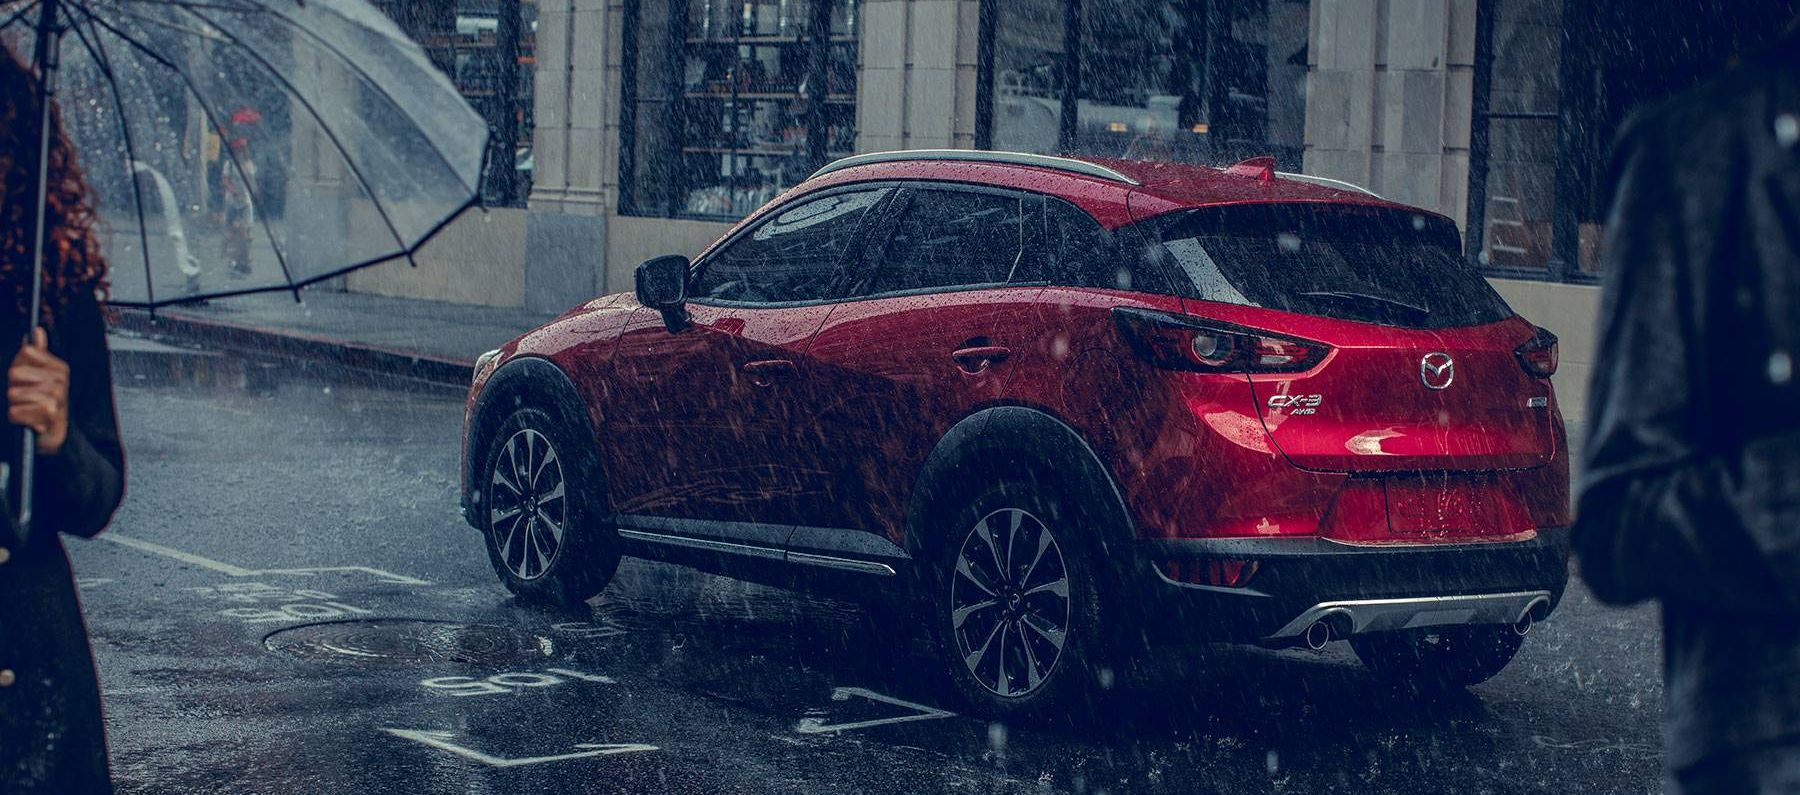 Grip Rainy Streets with the CX-3's Available AWD!